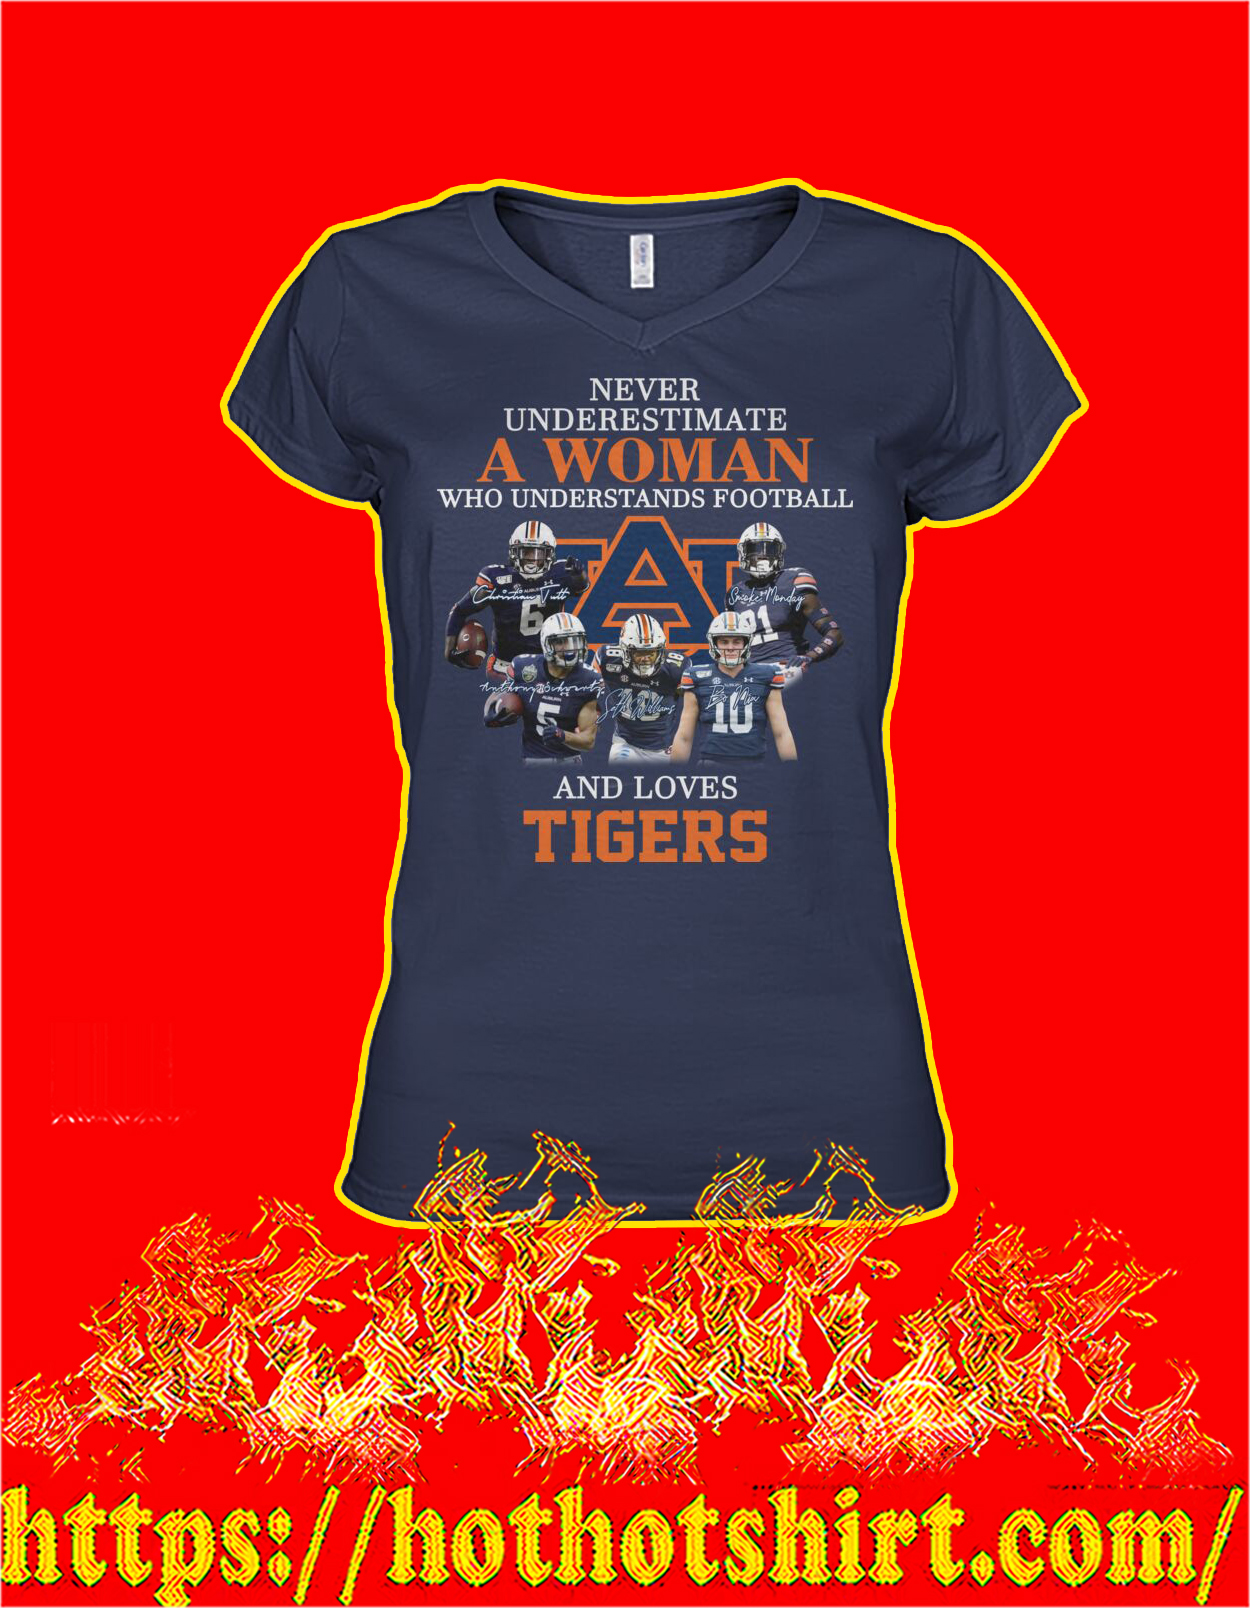 Never underestimate a woman understands football and loves tigers women shirt